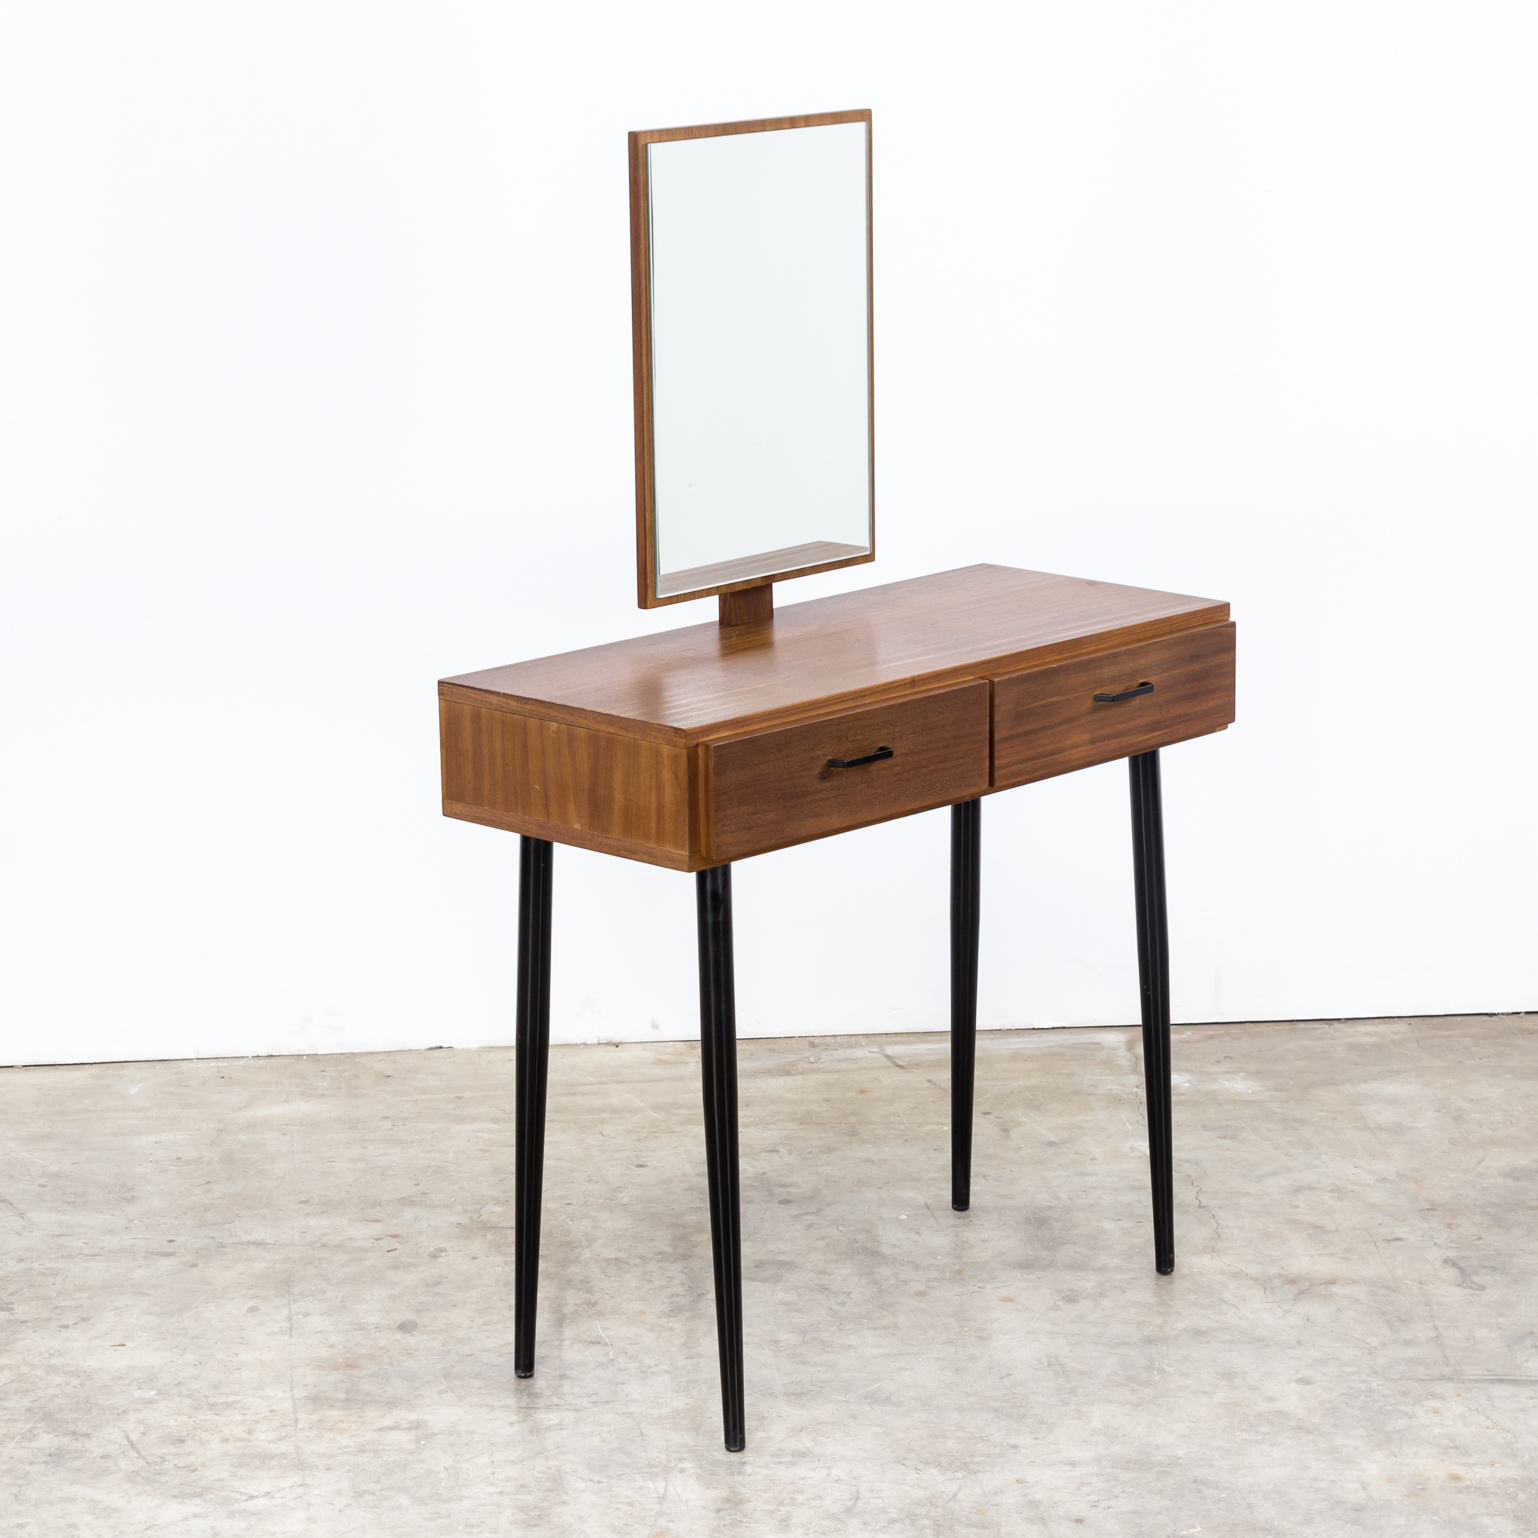 60s teak dressing table with mirror barbmama for 60s table design